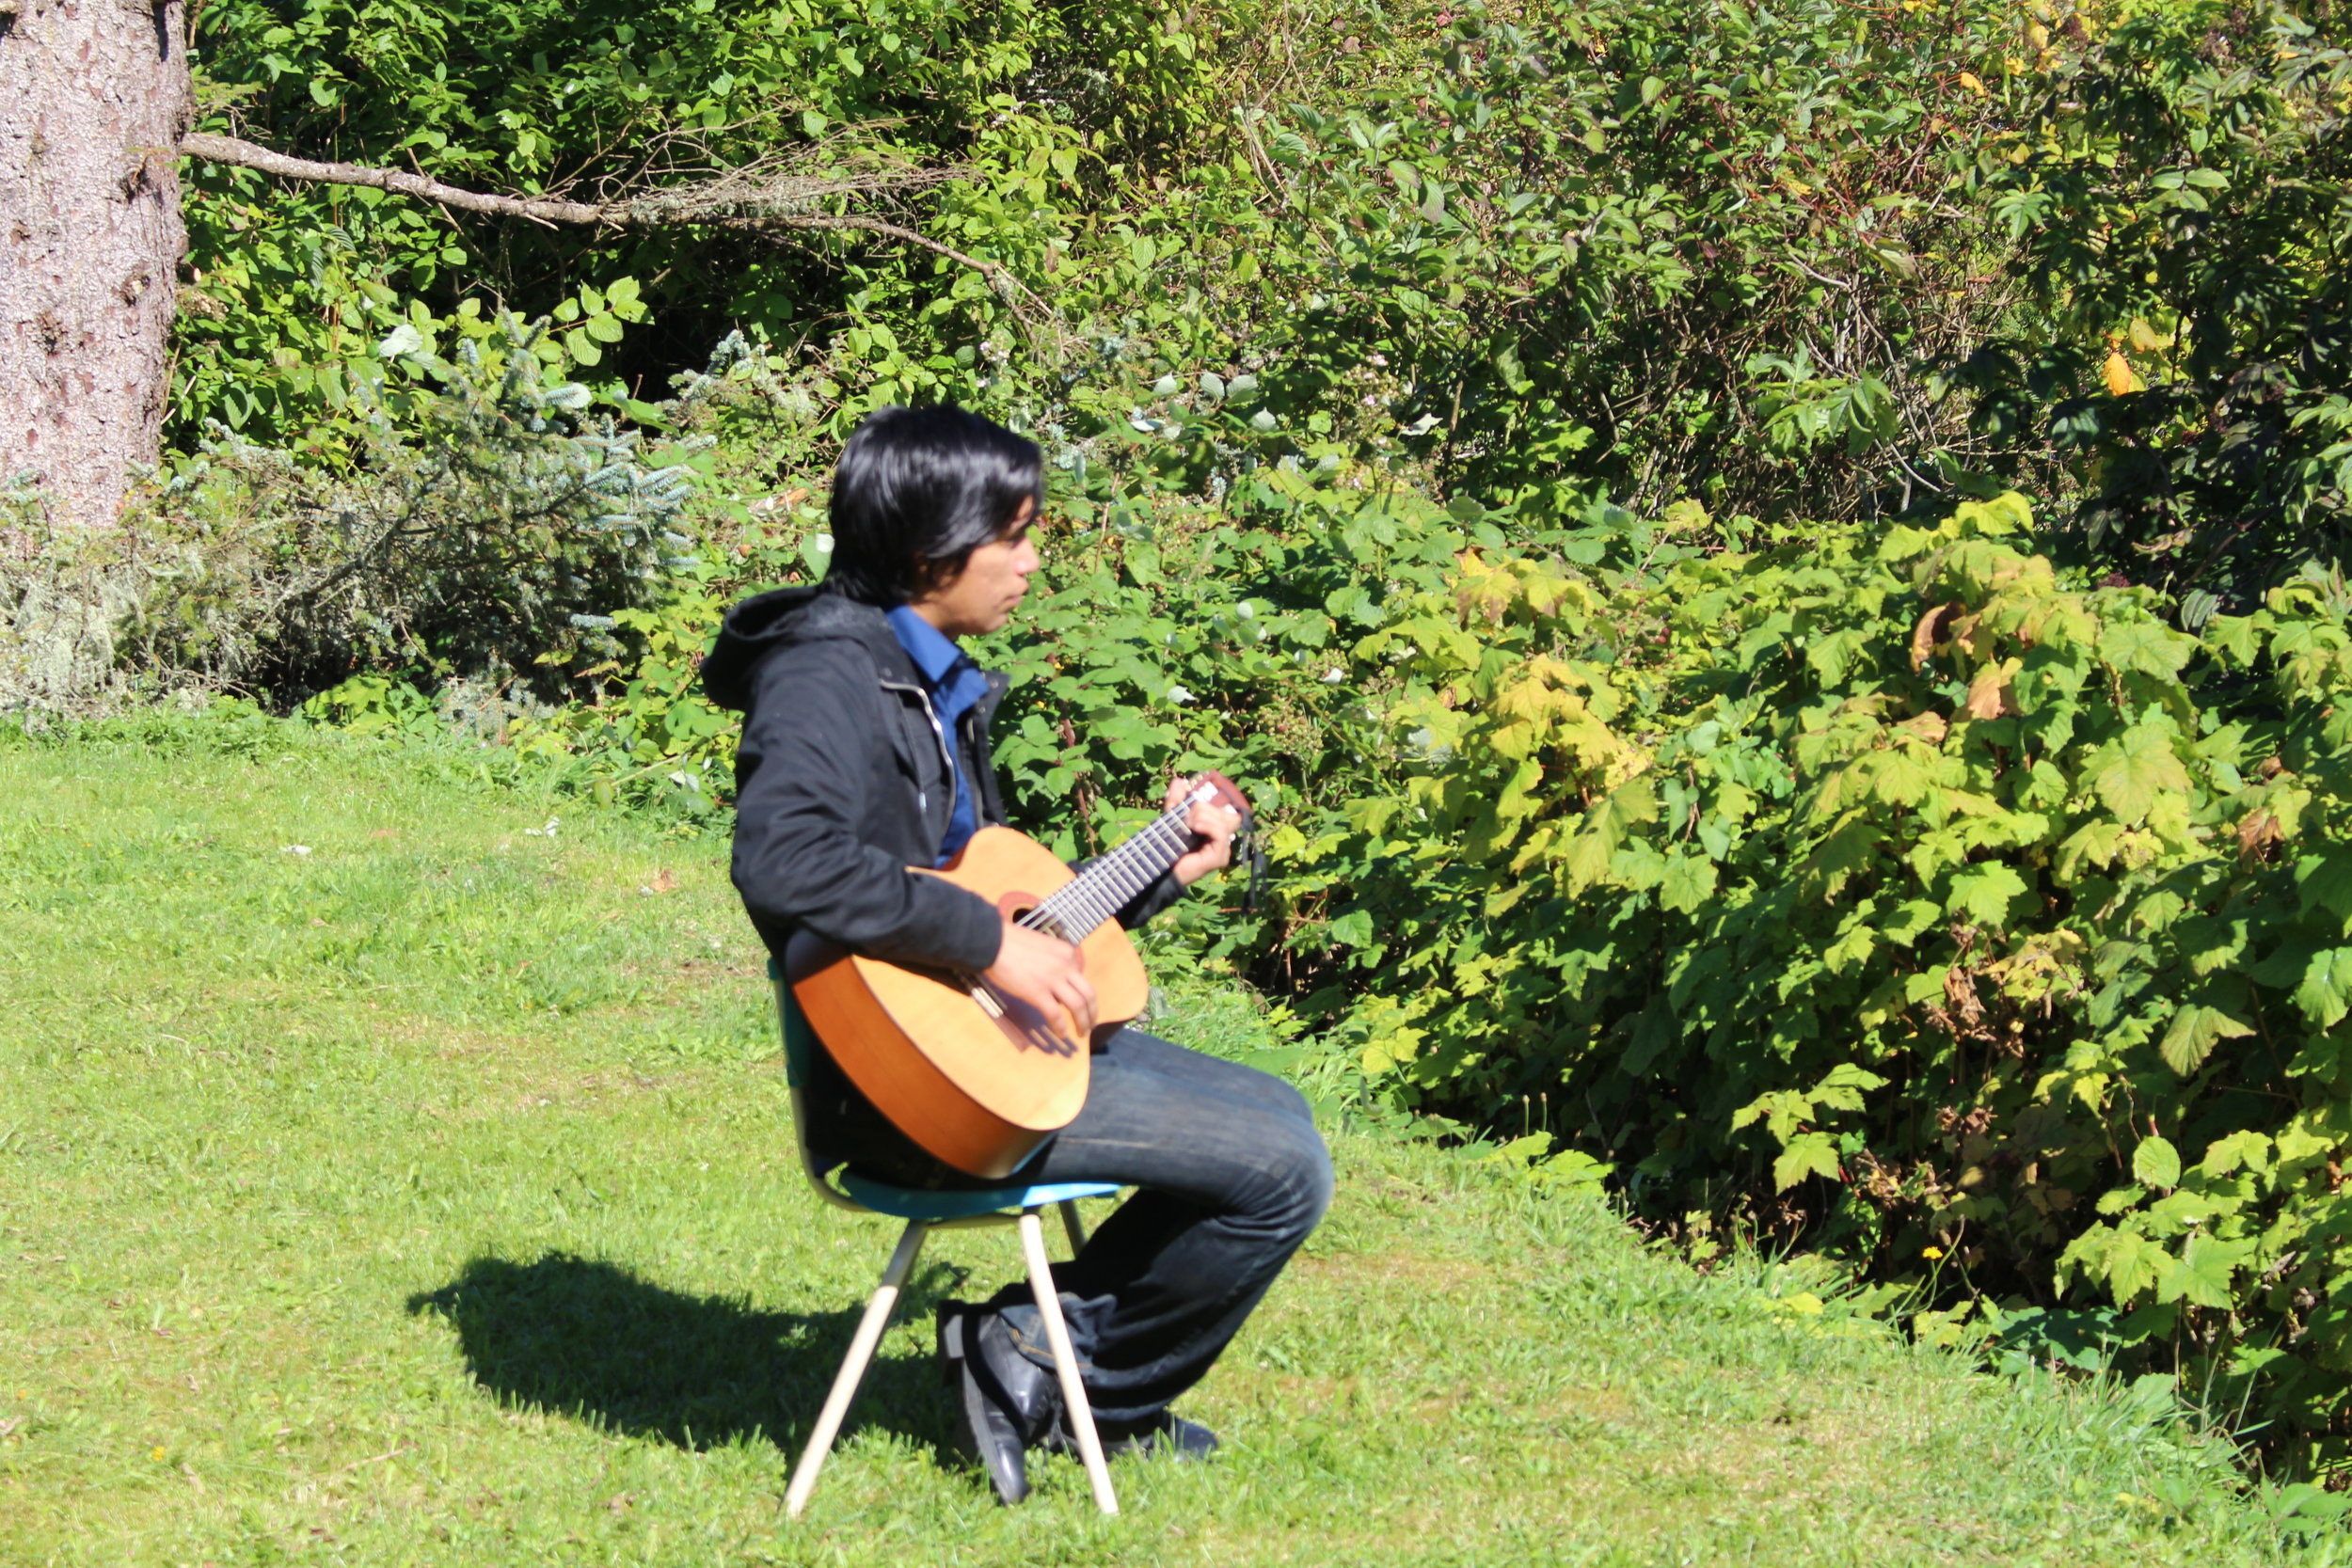 Stephen finds inspiration in music. He plays the guitar and ukulele to work through creative challenges. Photo by Roberta Williams.